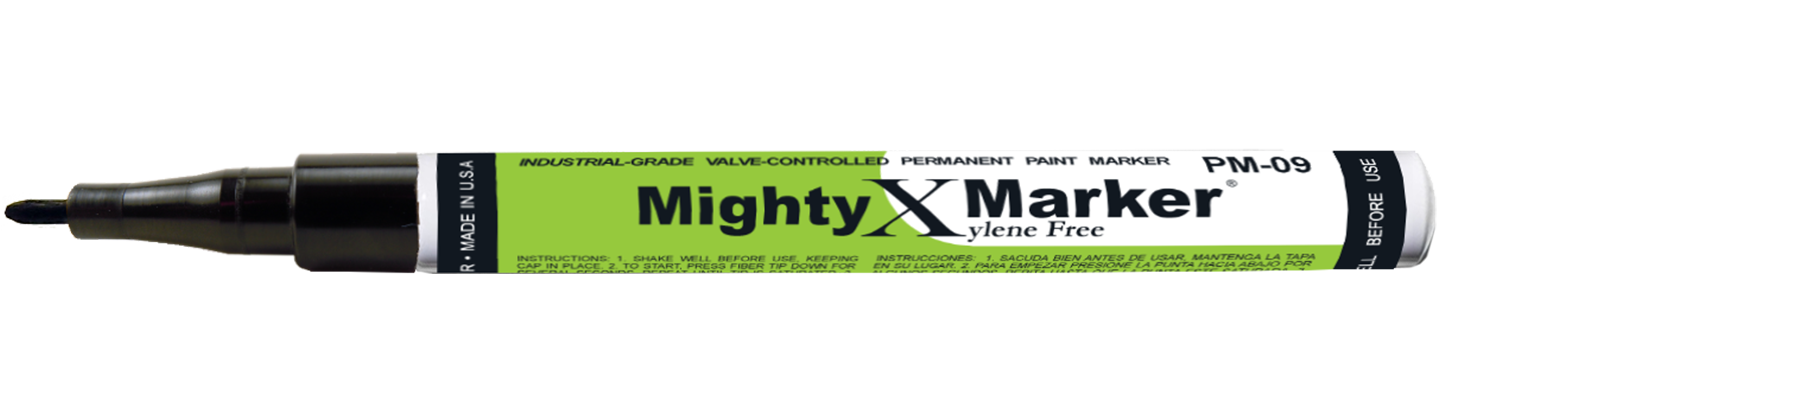 Mighty X Marker